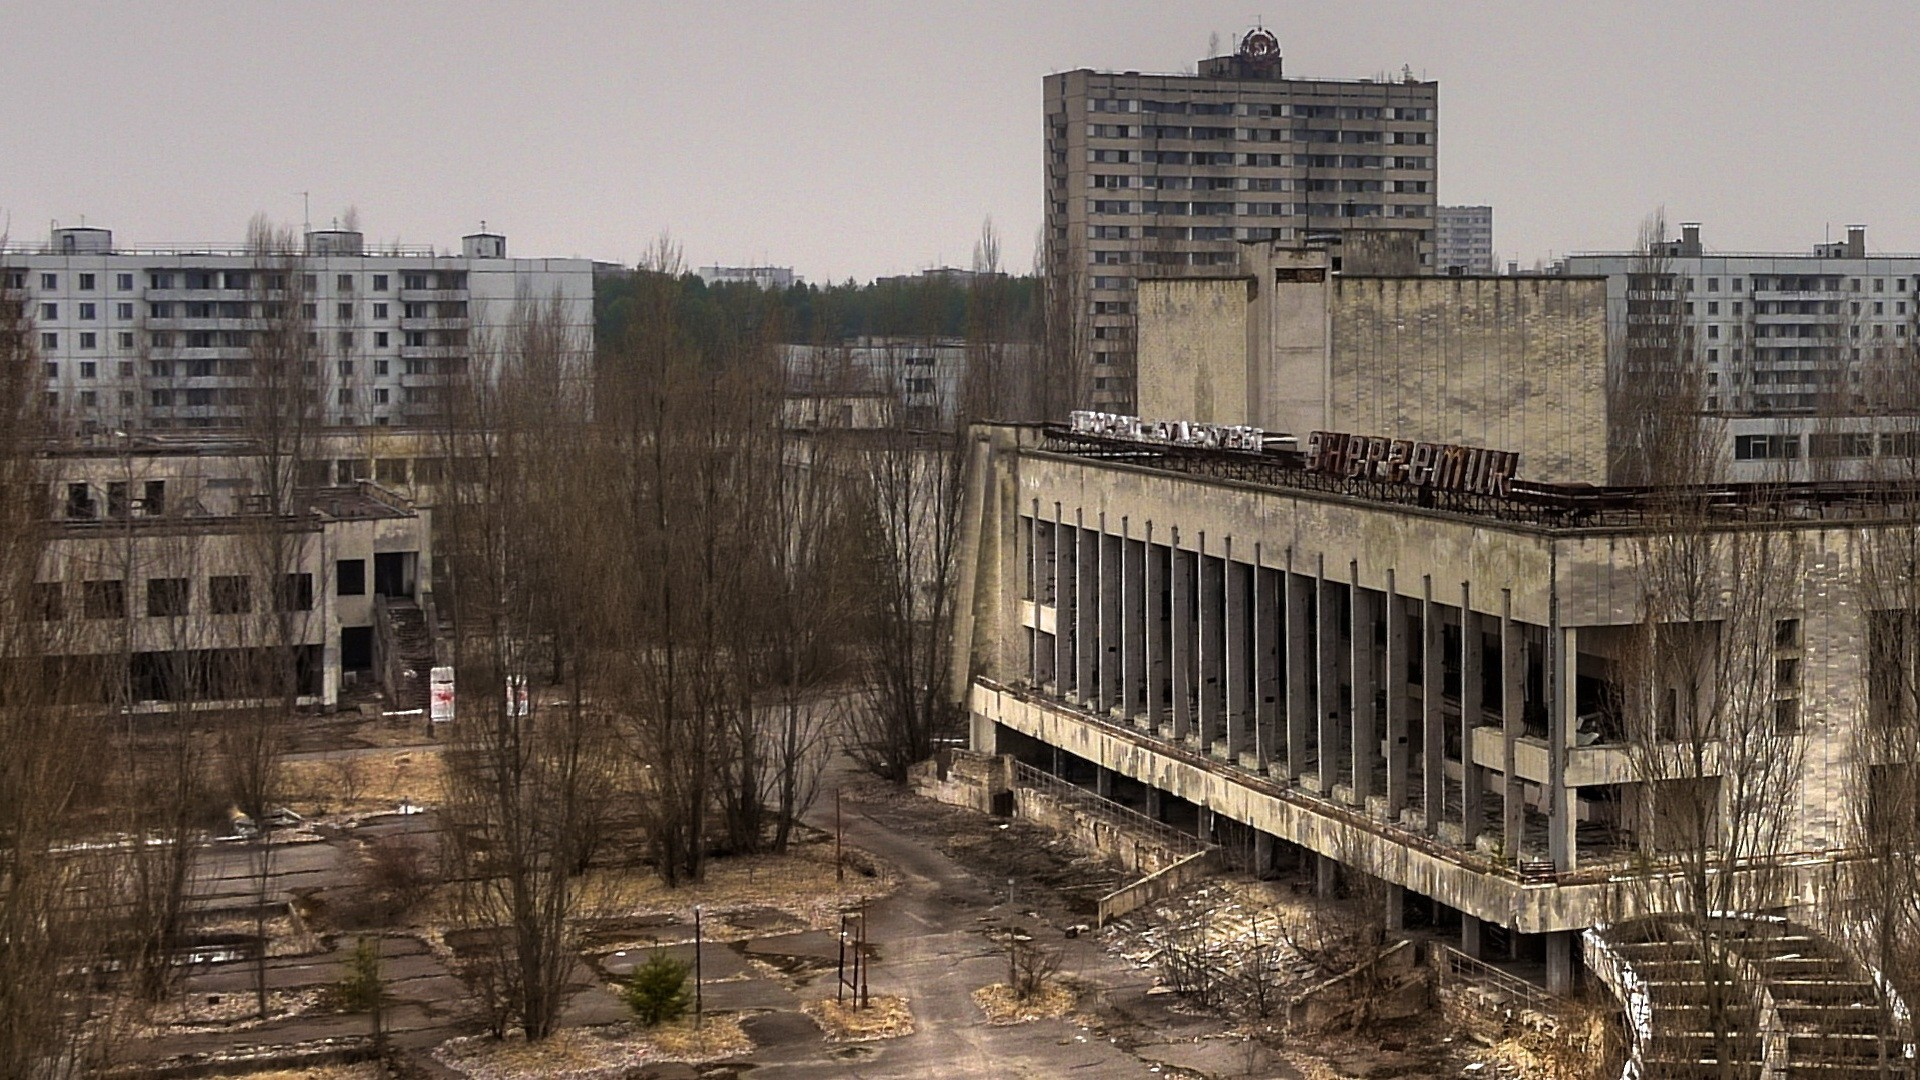 cityscapes-chernobyl-pripyat-wallpapers-wallpaper